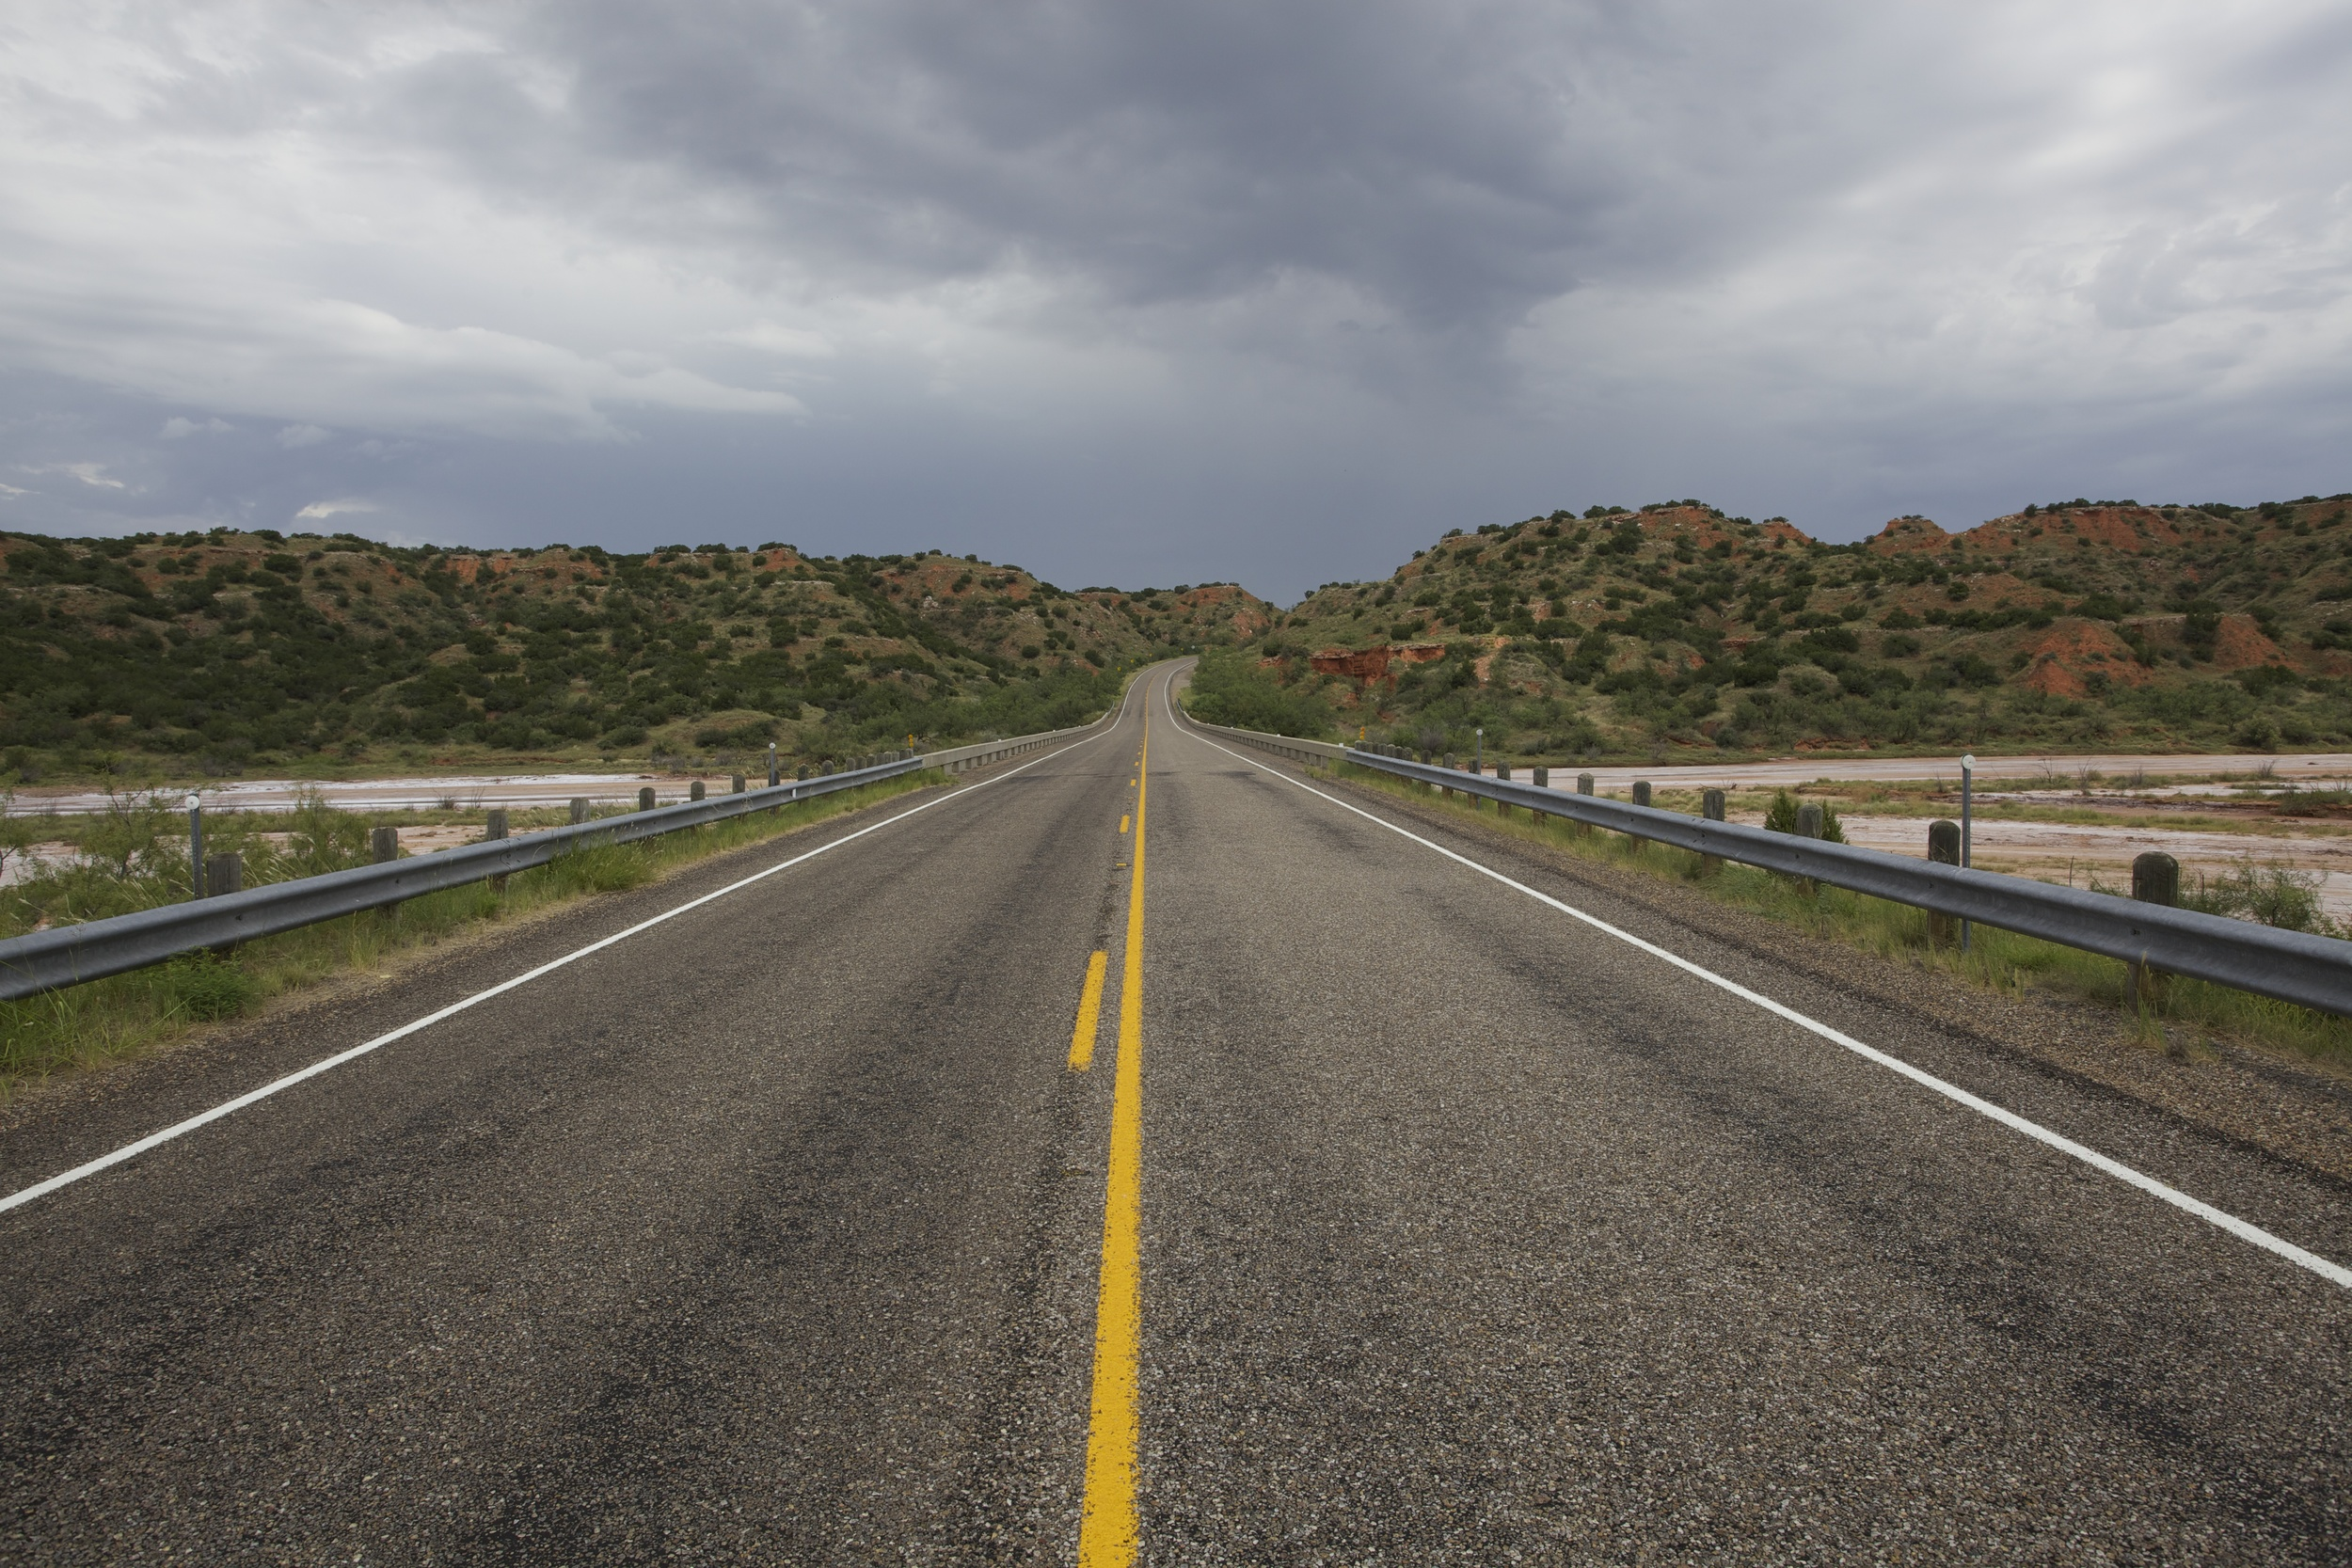 Texas State Highway 70. Image from Wikimedia.